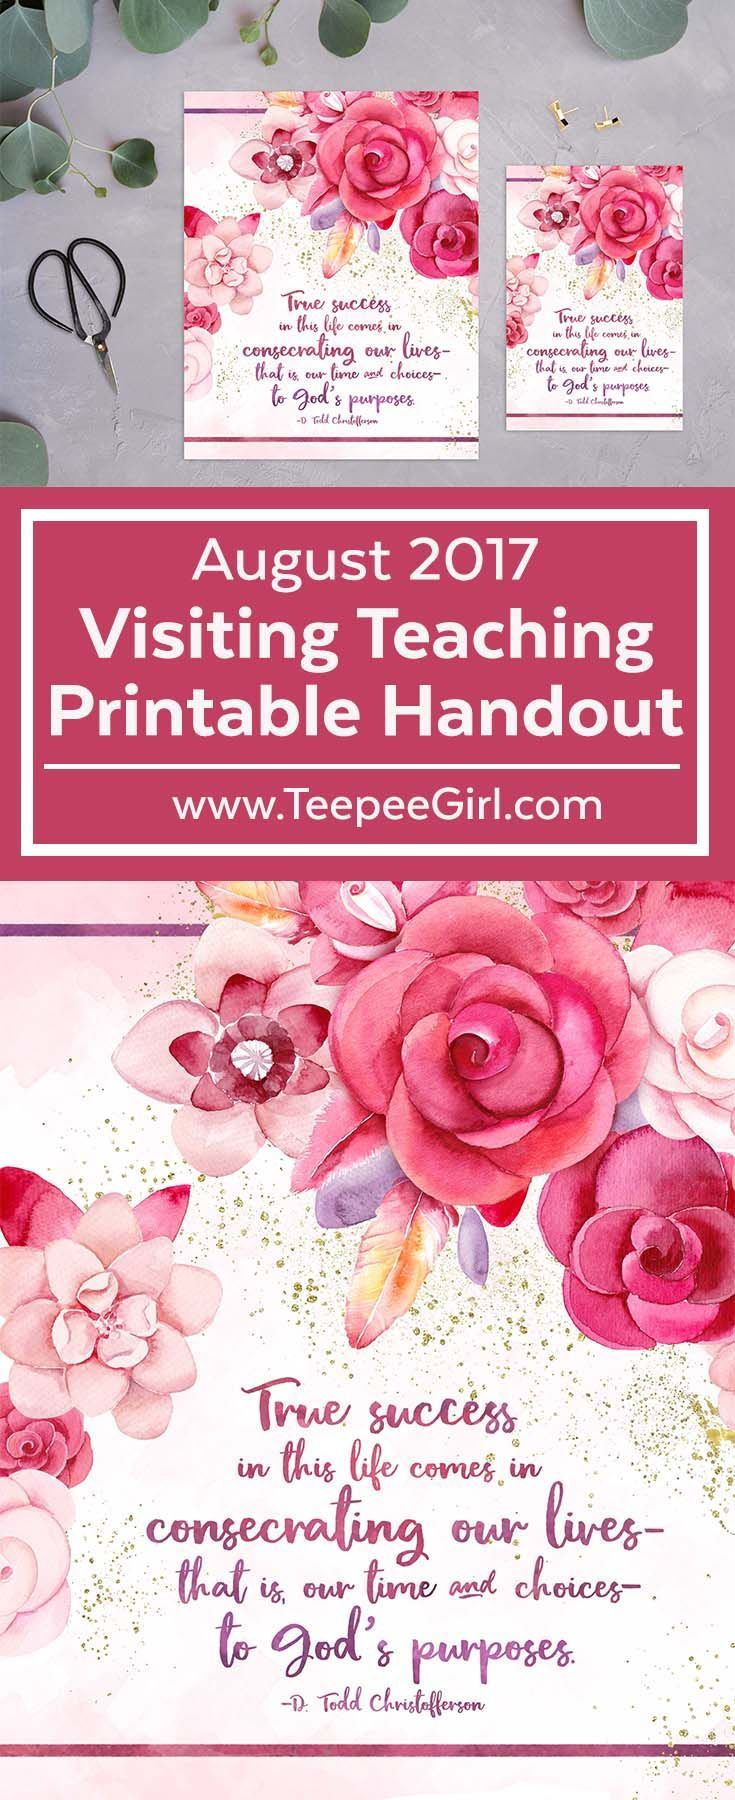 This August 2017 Visiting Teaching printable handout is a perfect gift for your sisters and friends! It comes in 2 sizes: 8x10 & 4x6. Get it at www.TeepeeGirl.com!